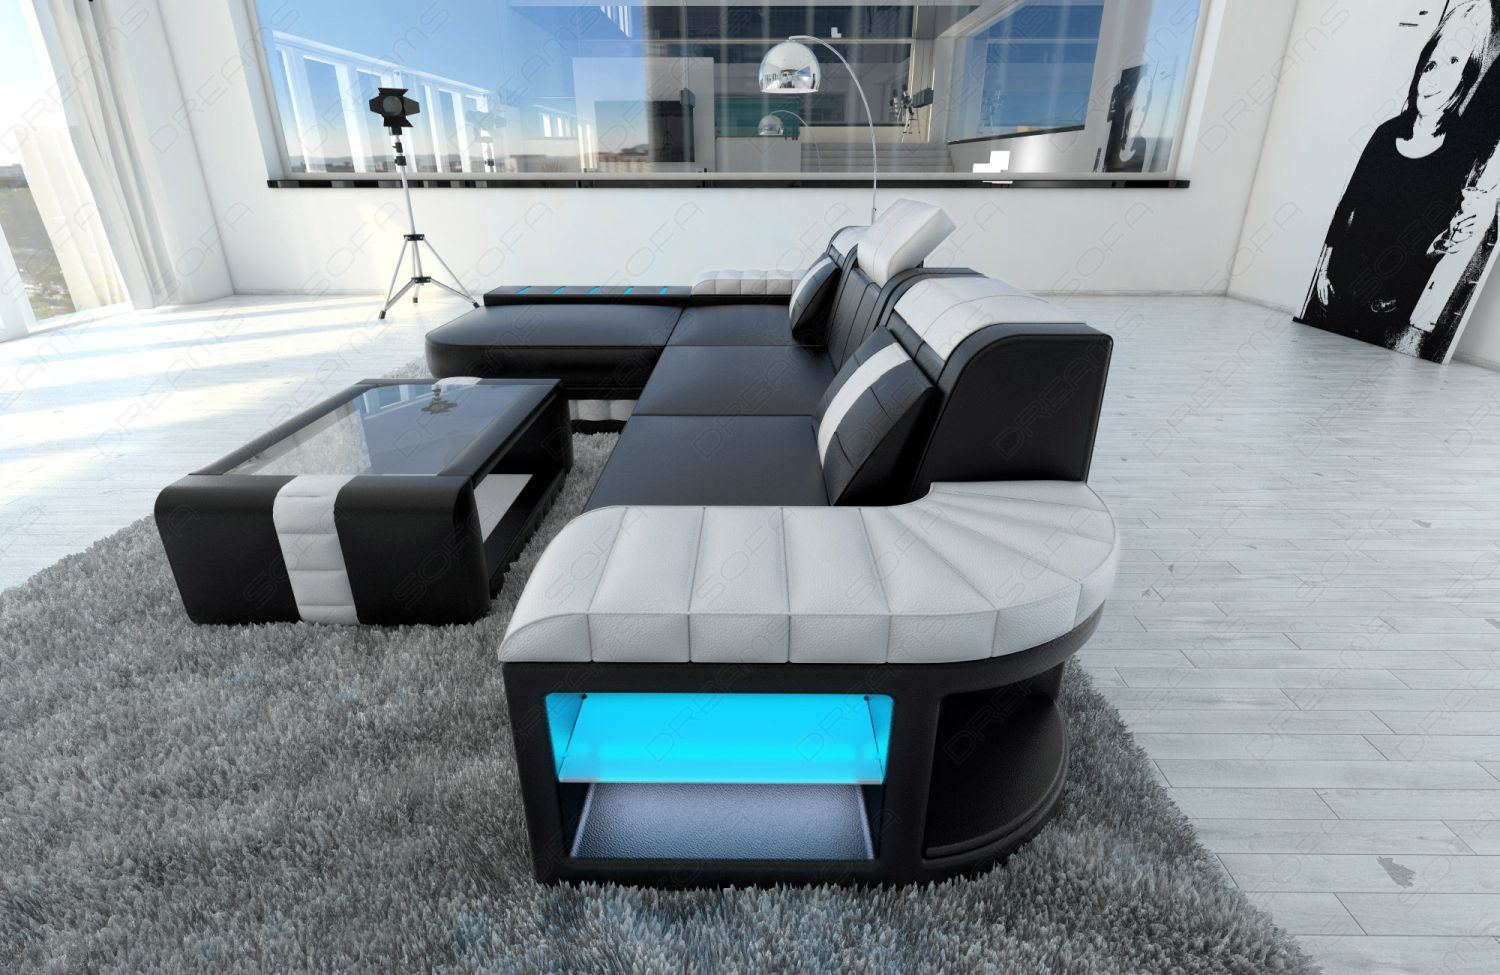 design ledersofa bellagio l form designersofa mit led beleuchtung ebay. Black Bedroom Furniture Sets. Home Design Ideas